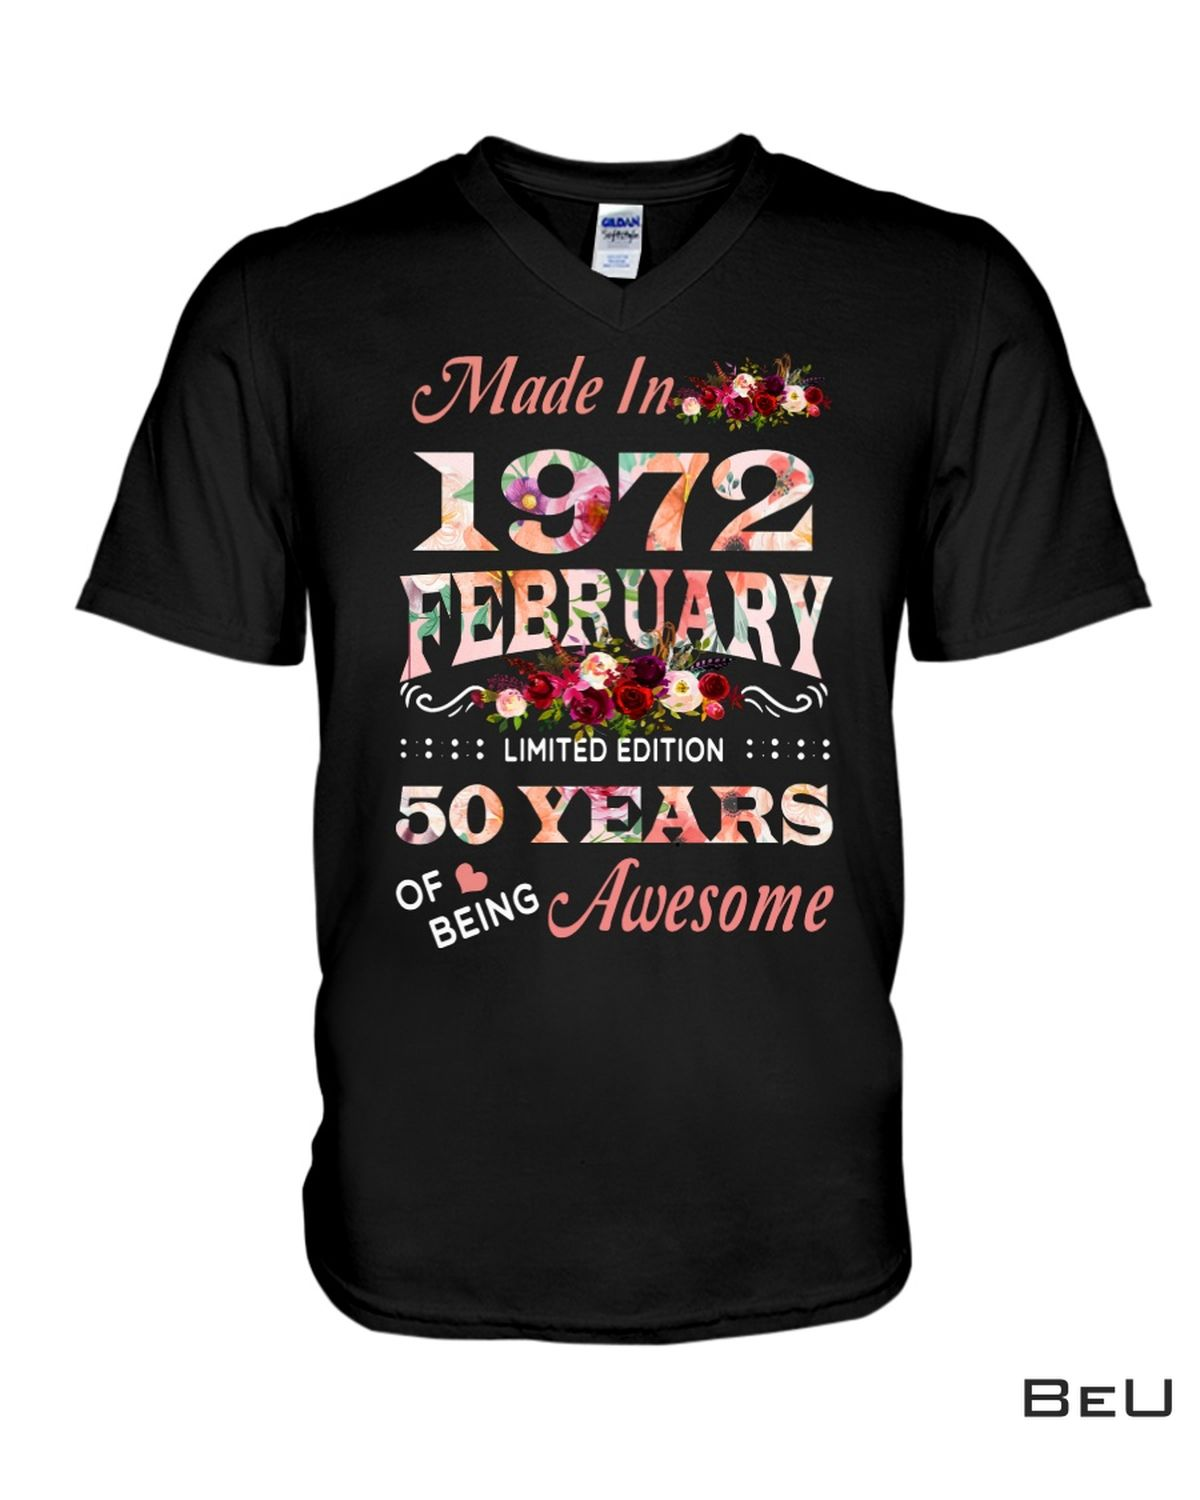 New Made In 1972 February Limited Edition Shirt